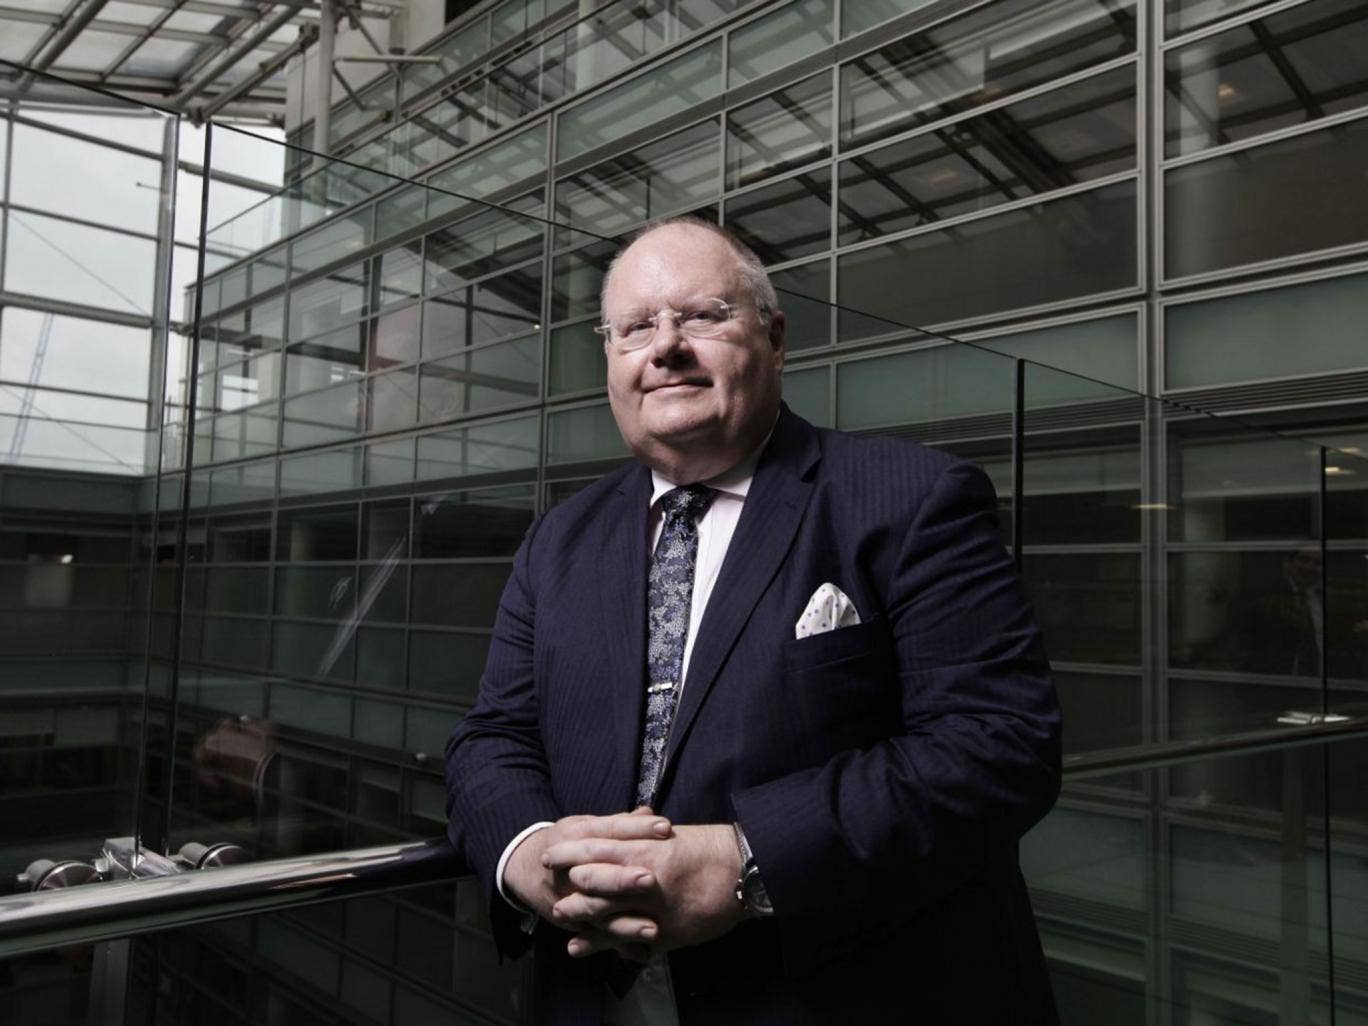 Eric Pickles said the rules would make councils more transparent